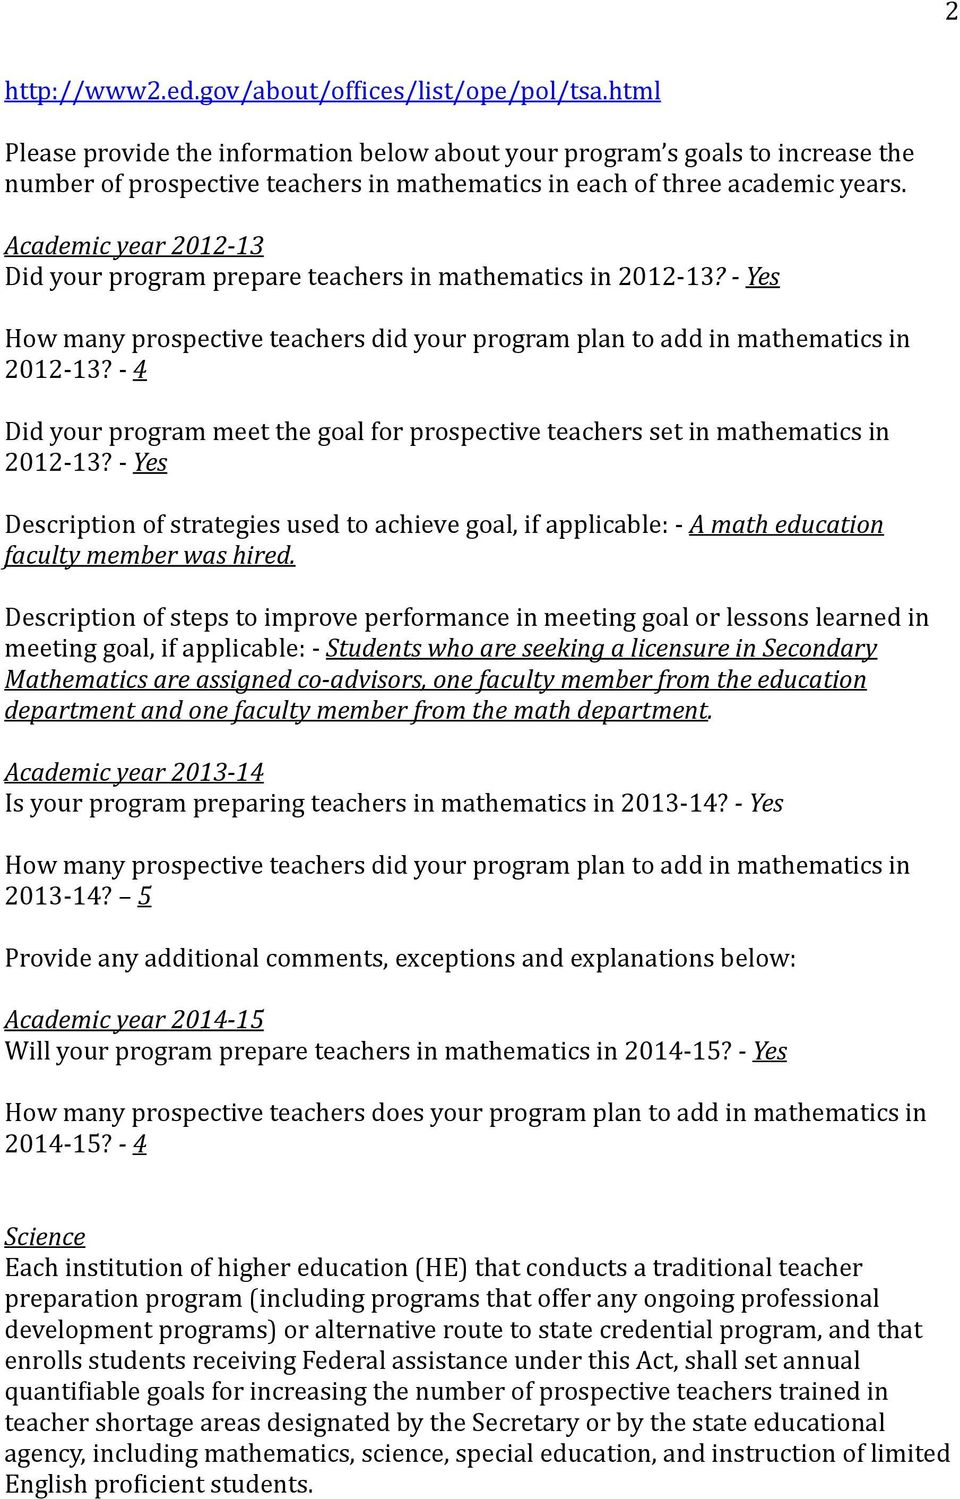 Academic 2012-13 Did your program prepare teachers in mathematics in 2012-13? - How many prospective teachers did your program plan to add in mathematics in 2012-13?